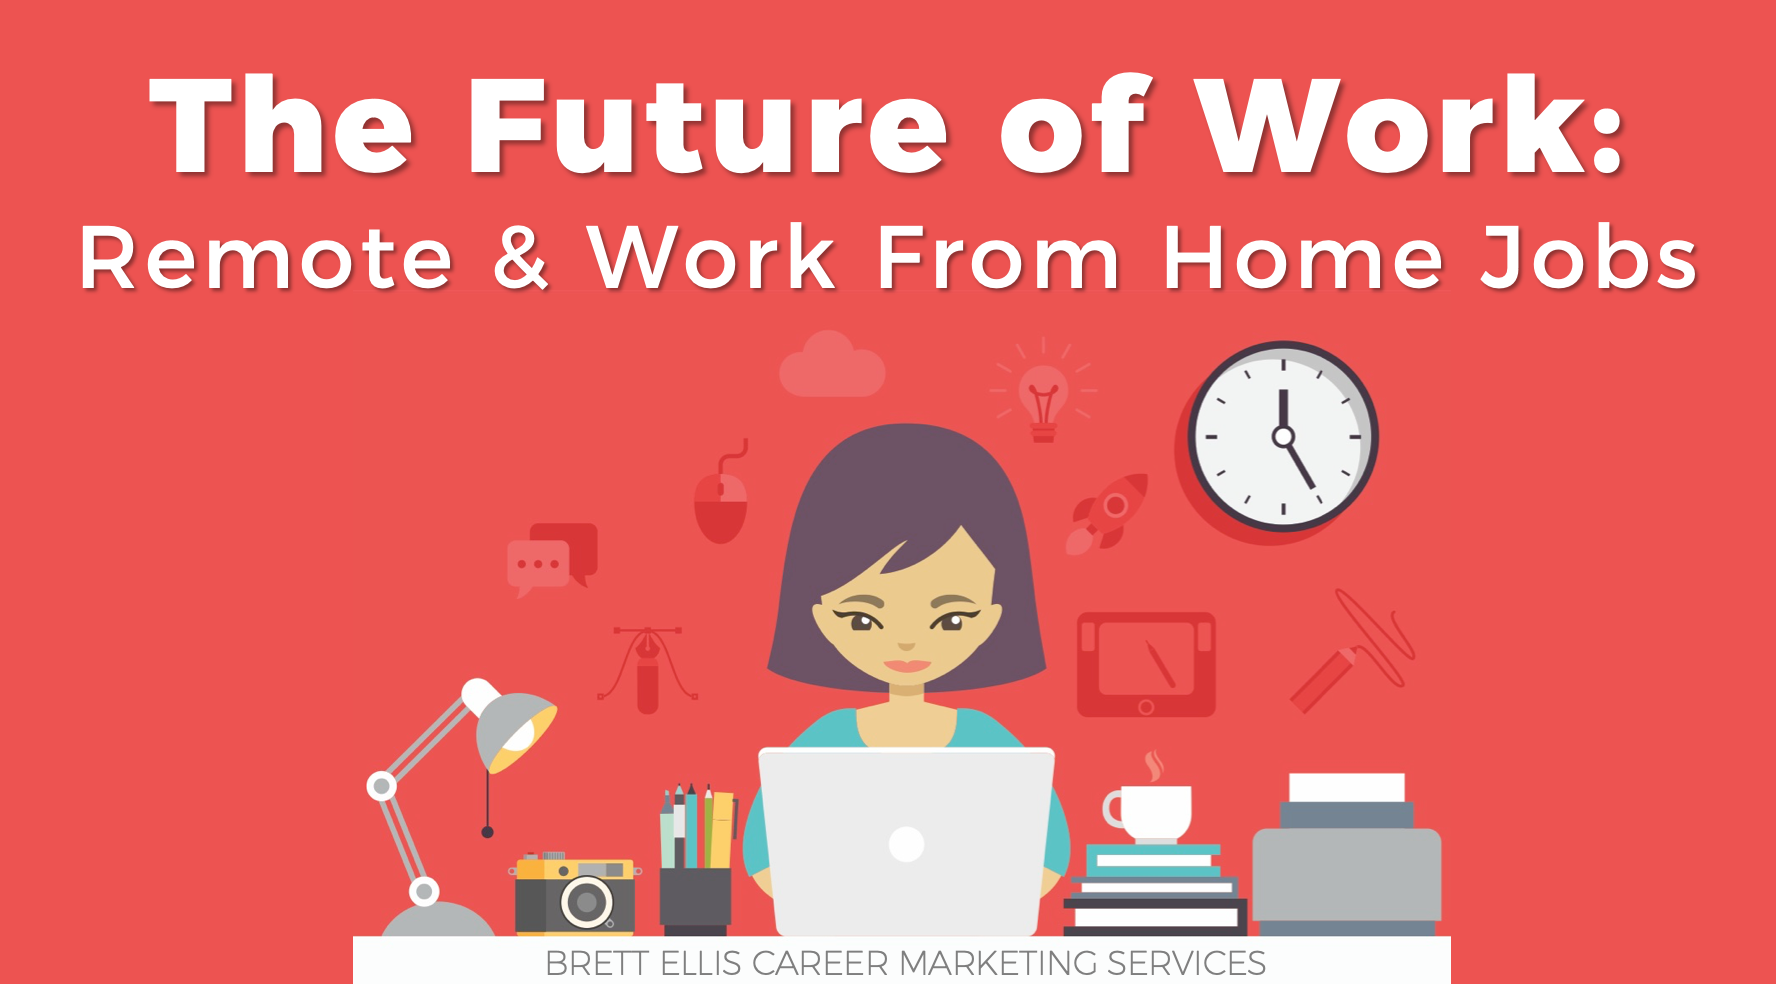 The Future of Work: Remote & Work from Home Jobs